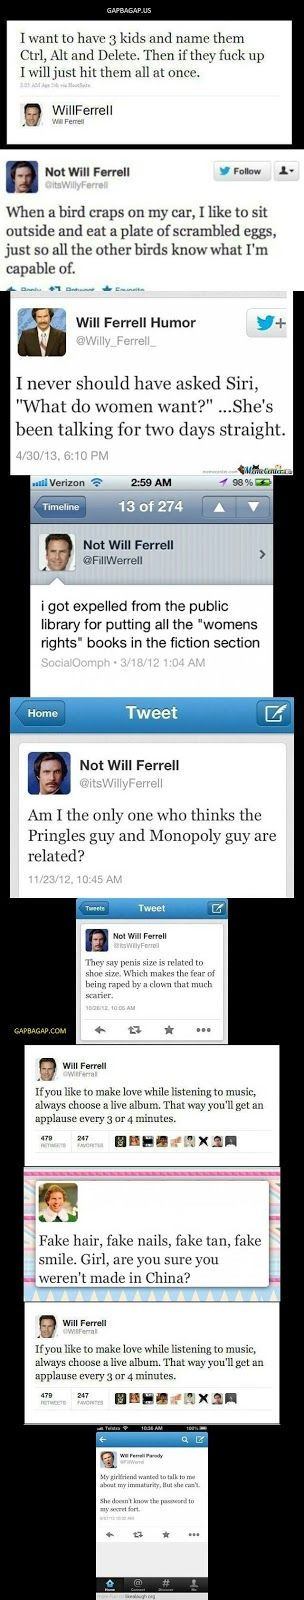 Top 10 #Funny Tweets By Will Ferrell